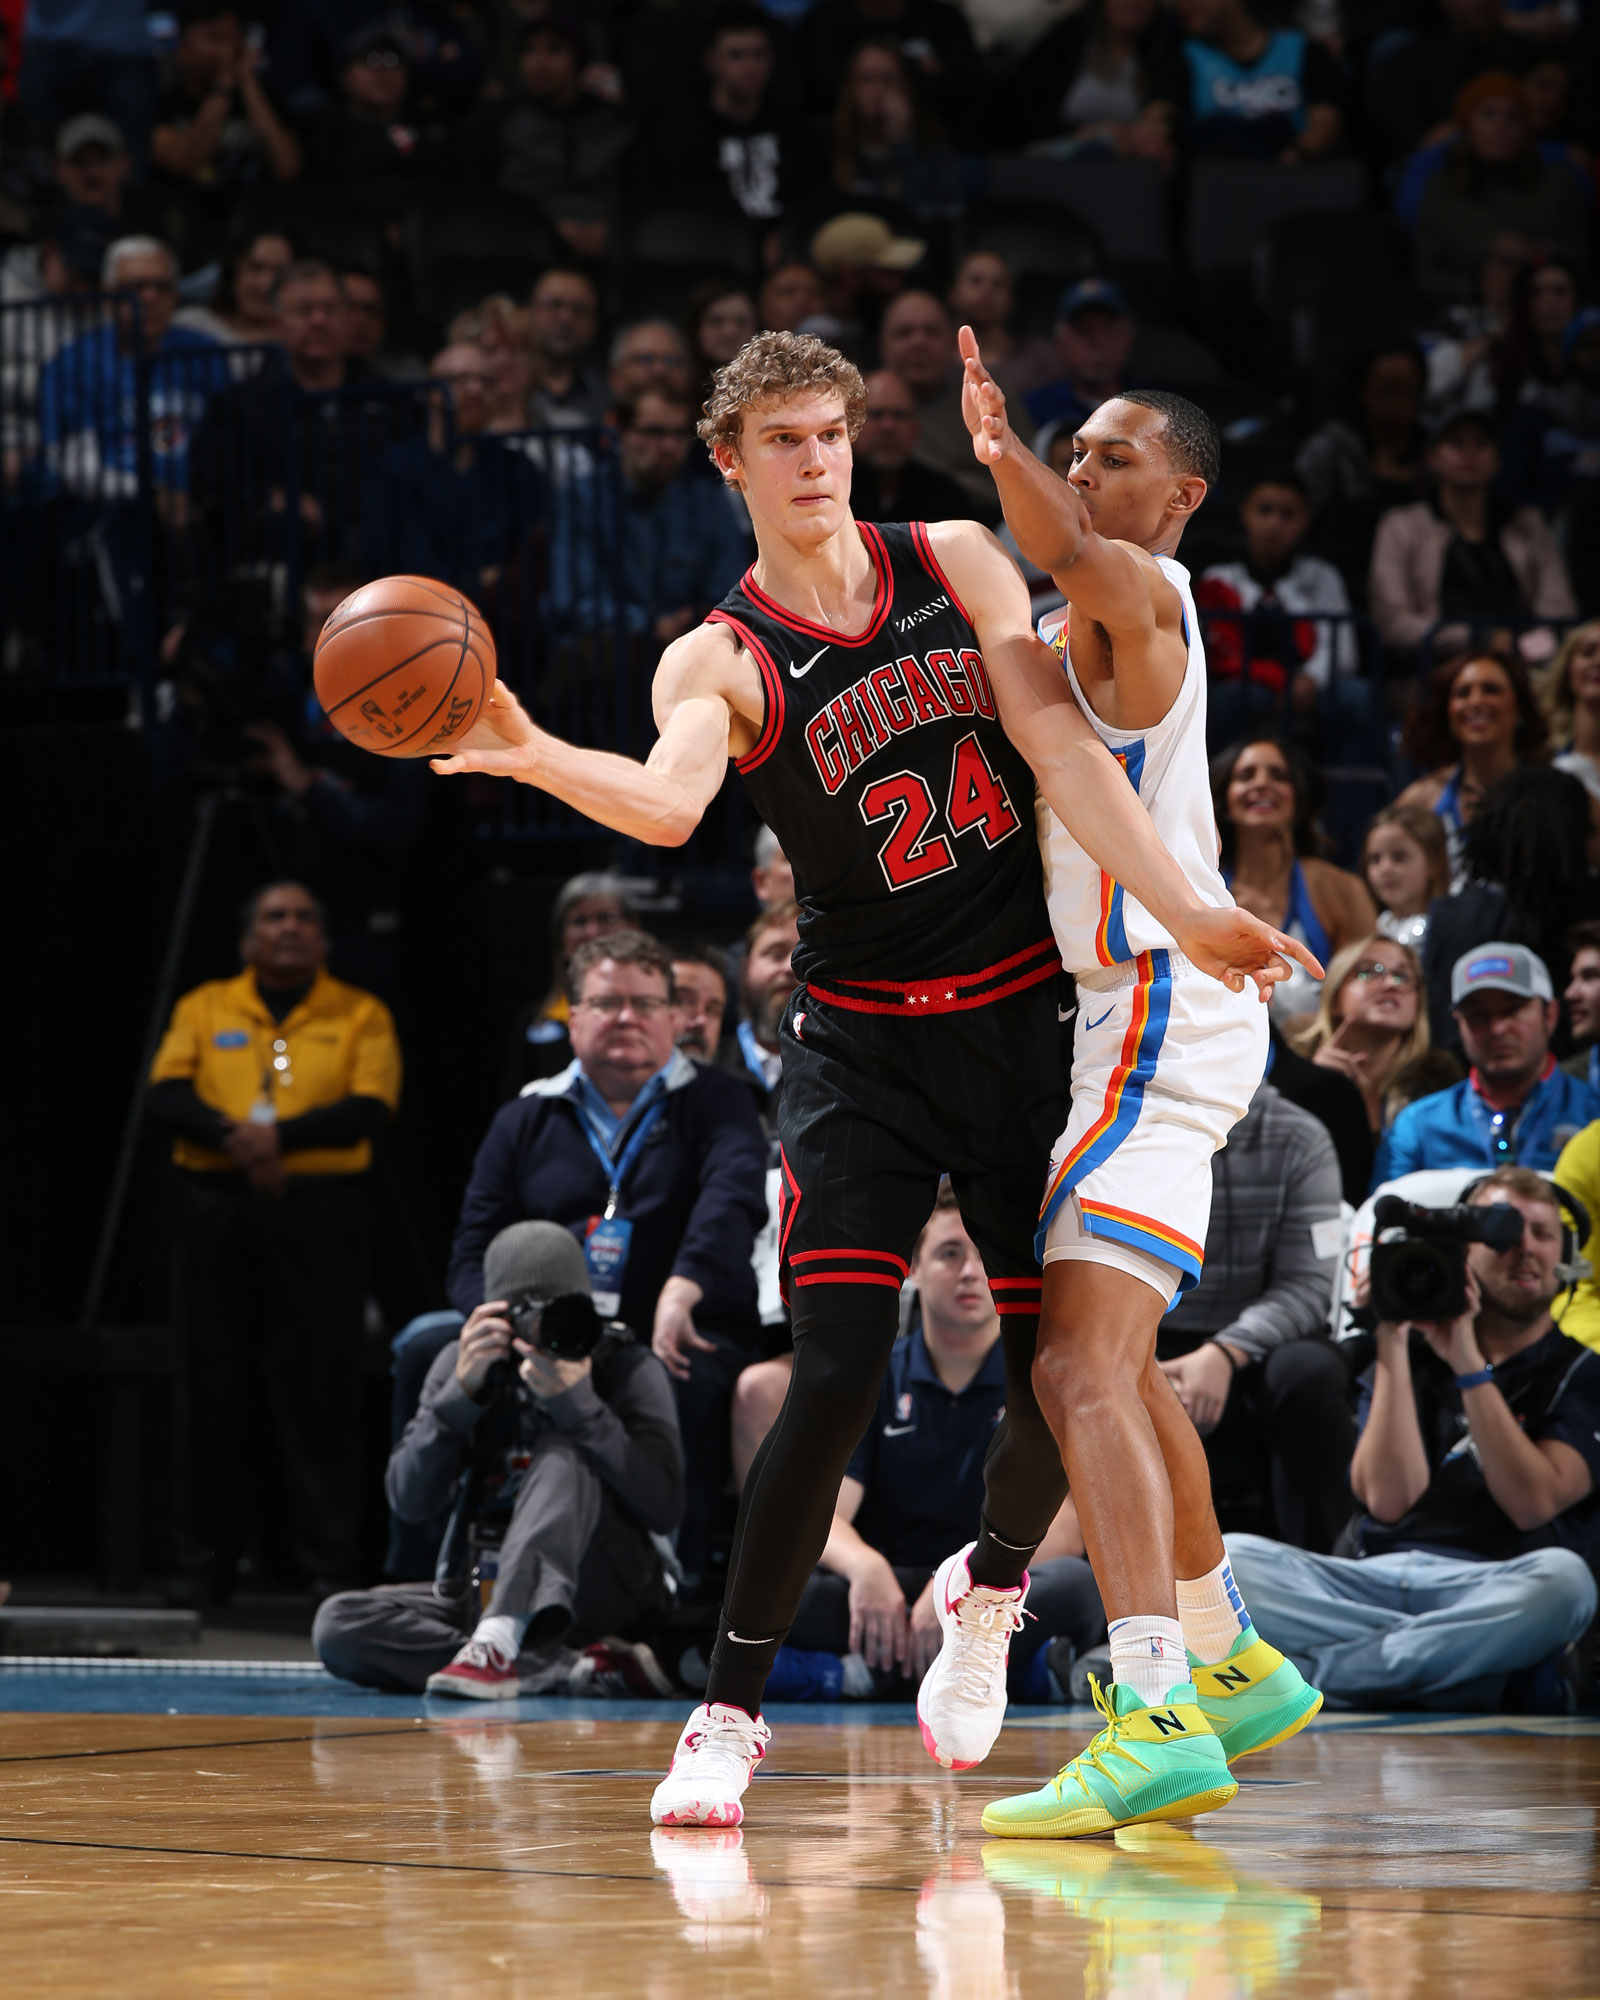 Lauri Markkanen looking to pass the ball against the Thunder